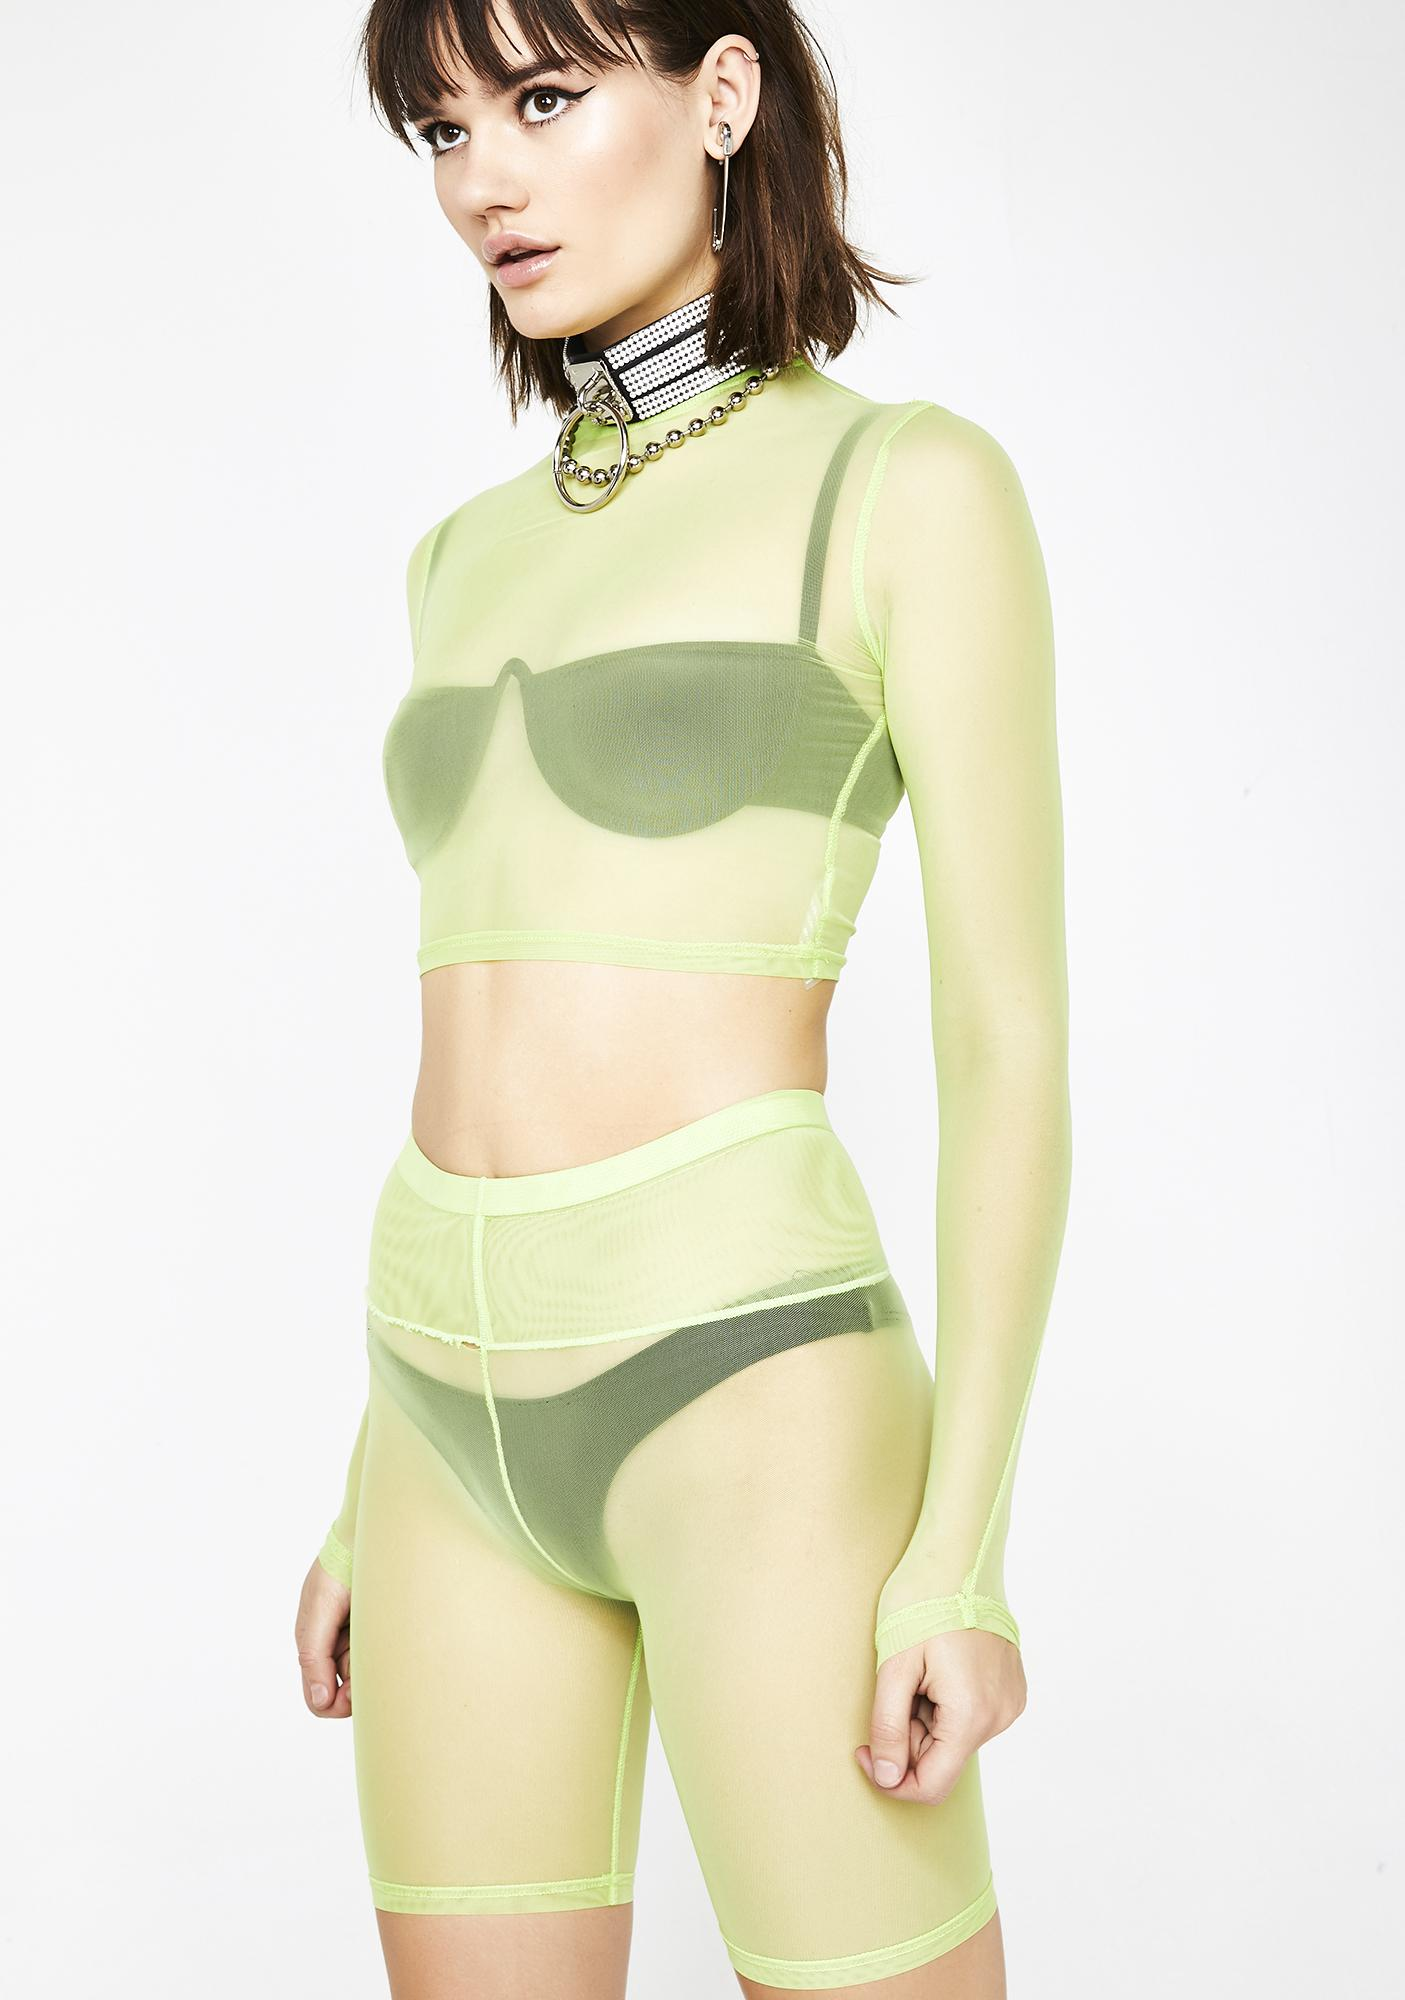 Exposed Assets Mesh Set